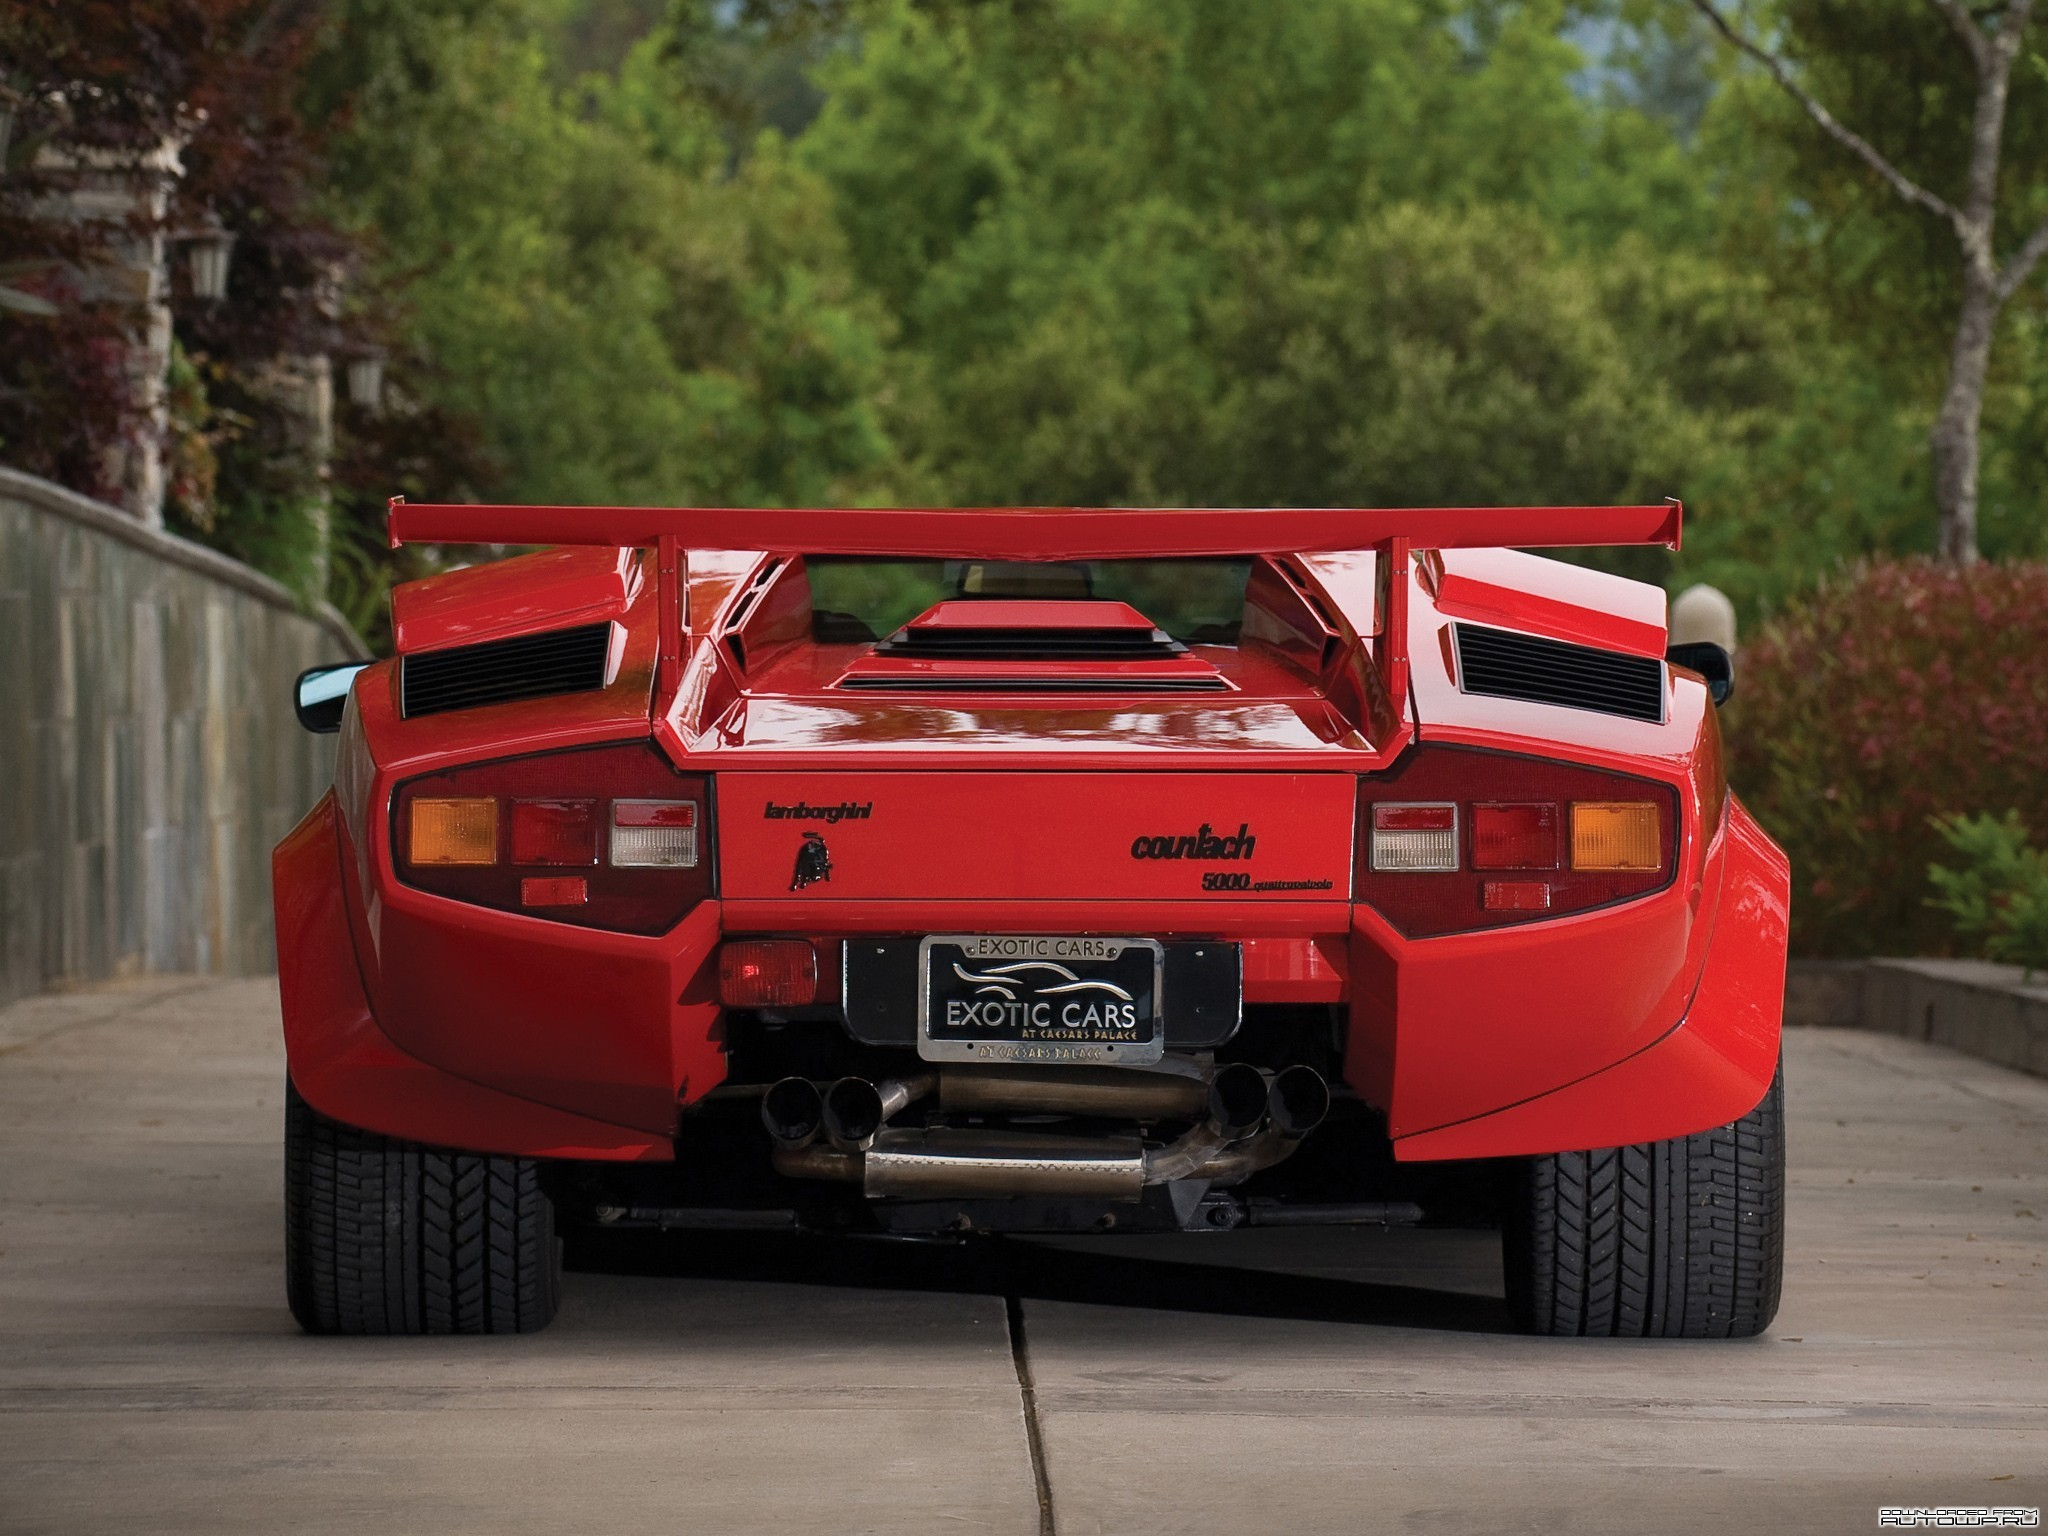 https://cdn.allwallpaper.in/wallpapers/2048x1536/12771/lamborghini-countach-quattrovalvole-auto-2048x1536-wallpaper.jpg